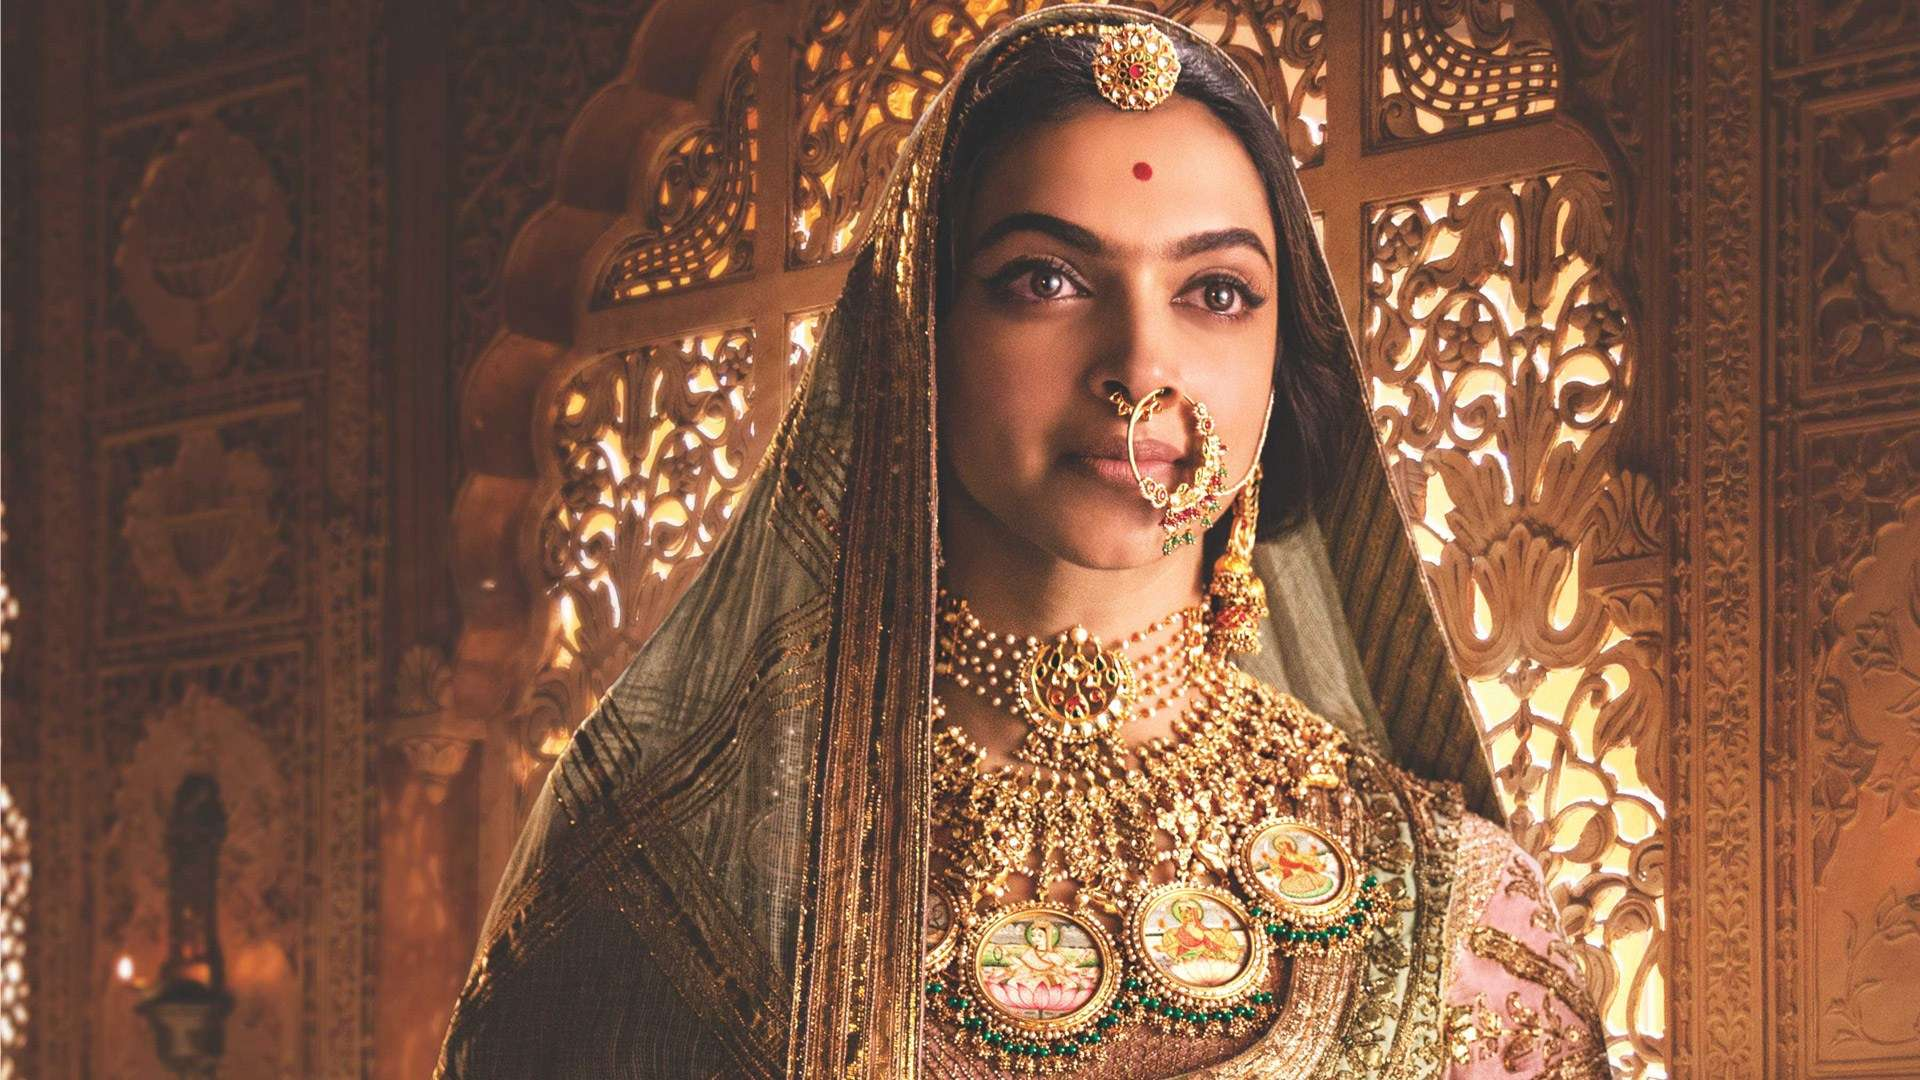 Much to the relief of fans, Sanjay Leela Bhansali's magnum opus has finally seen the light of day. The creators of Padmaavat had an uphill battle against controversies and protests. But as they say.,